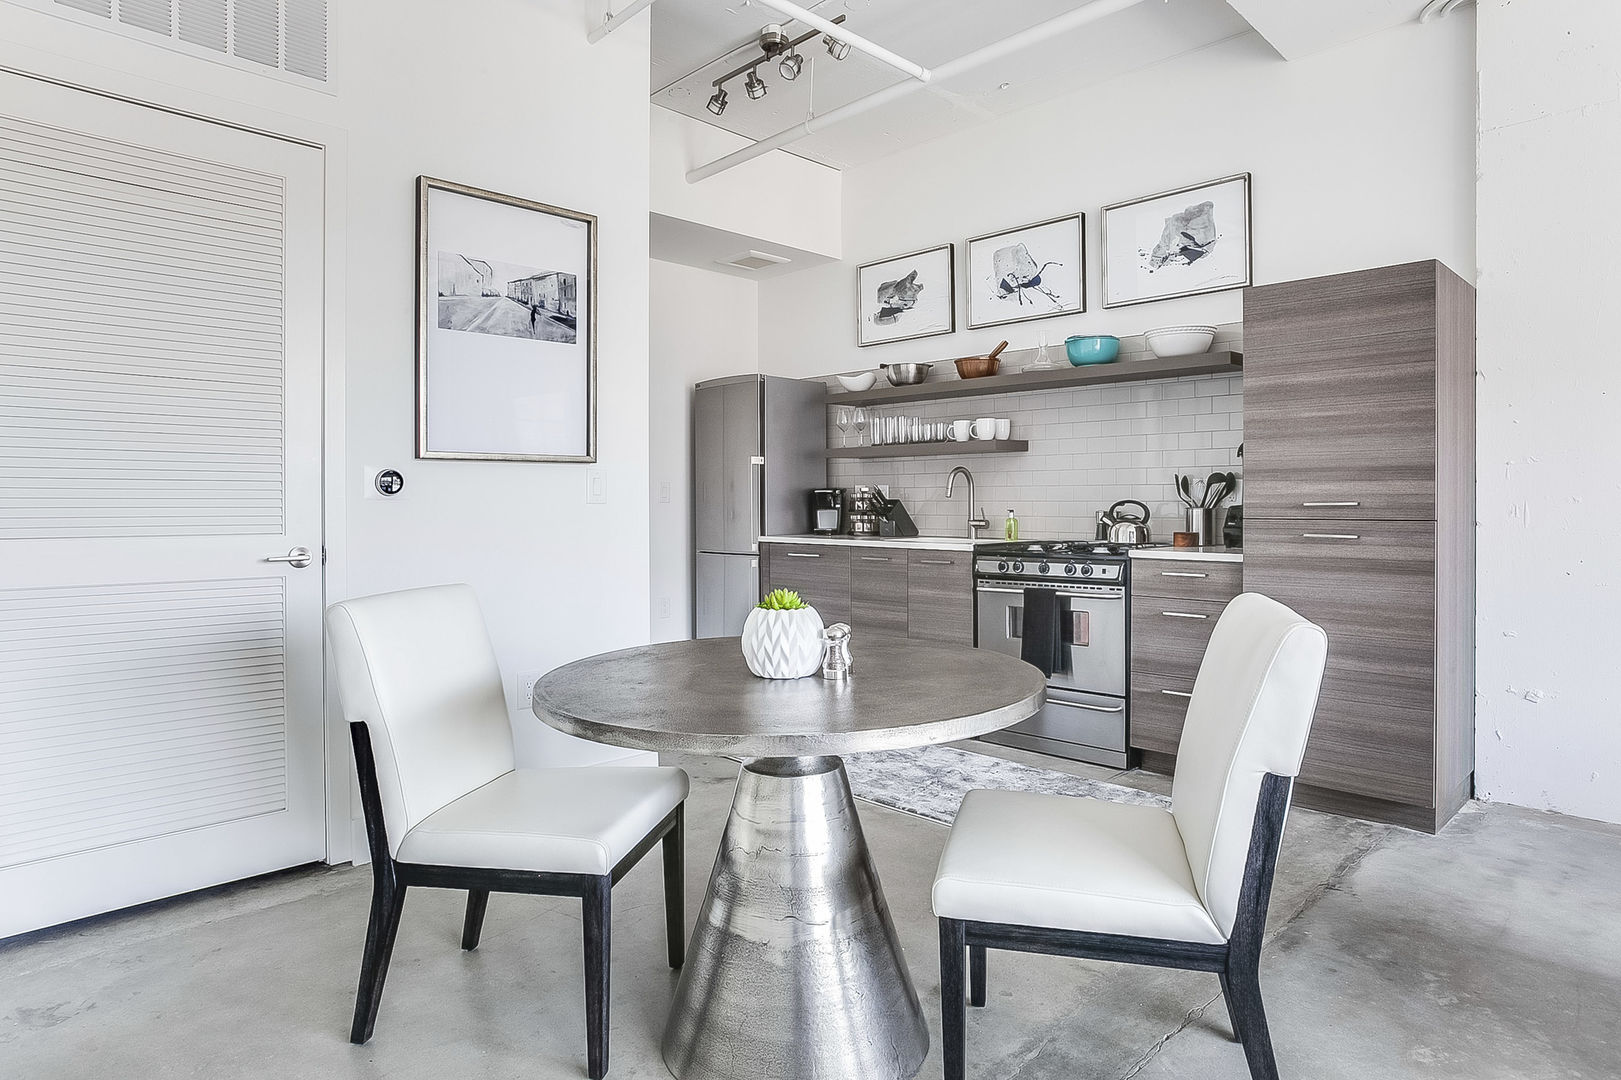 Dining area of this Apartment Near Ponce City Market, with the kitchen in the background.